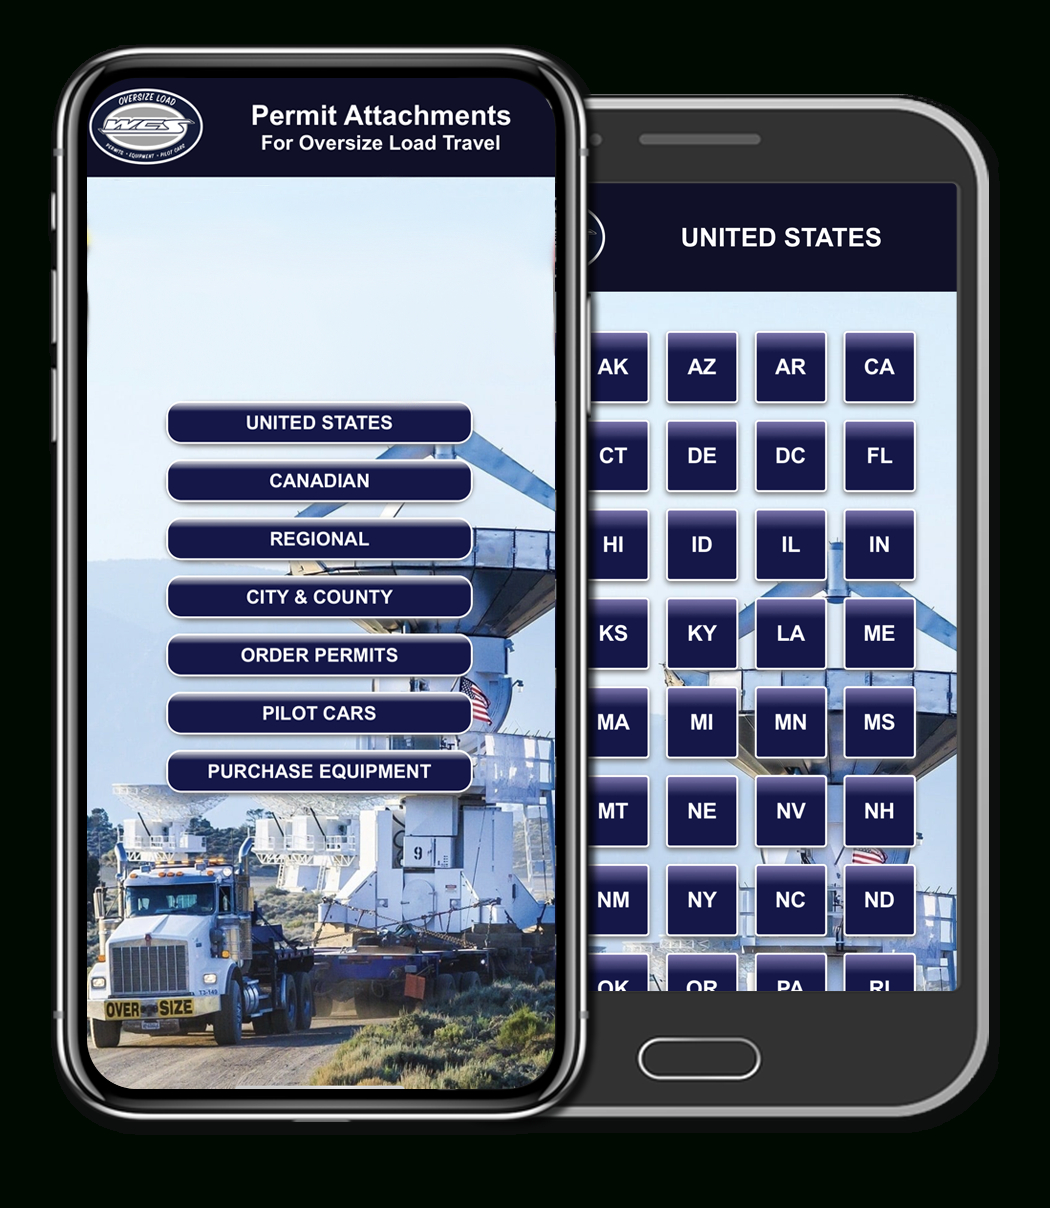 Wcs's Permit Attachment App Available On Itunes & Google Play - California Oversize Curfew Map